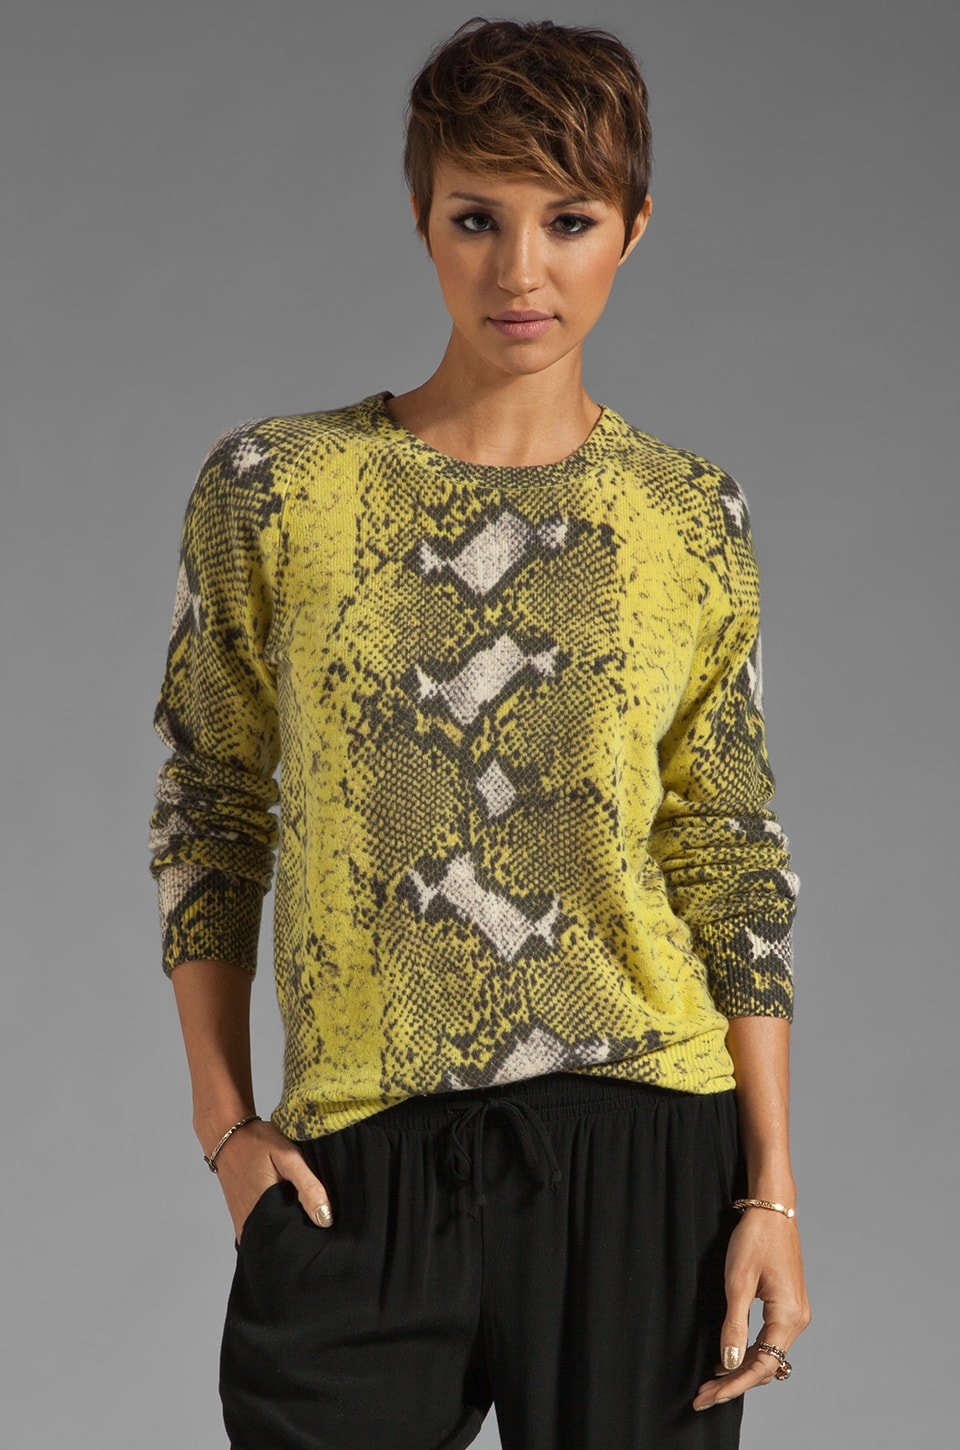 Equipment Sloane Diamondback Python Crew Neck Sweater in Blazing Yellow